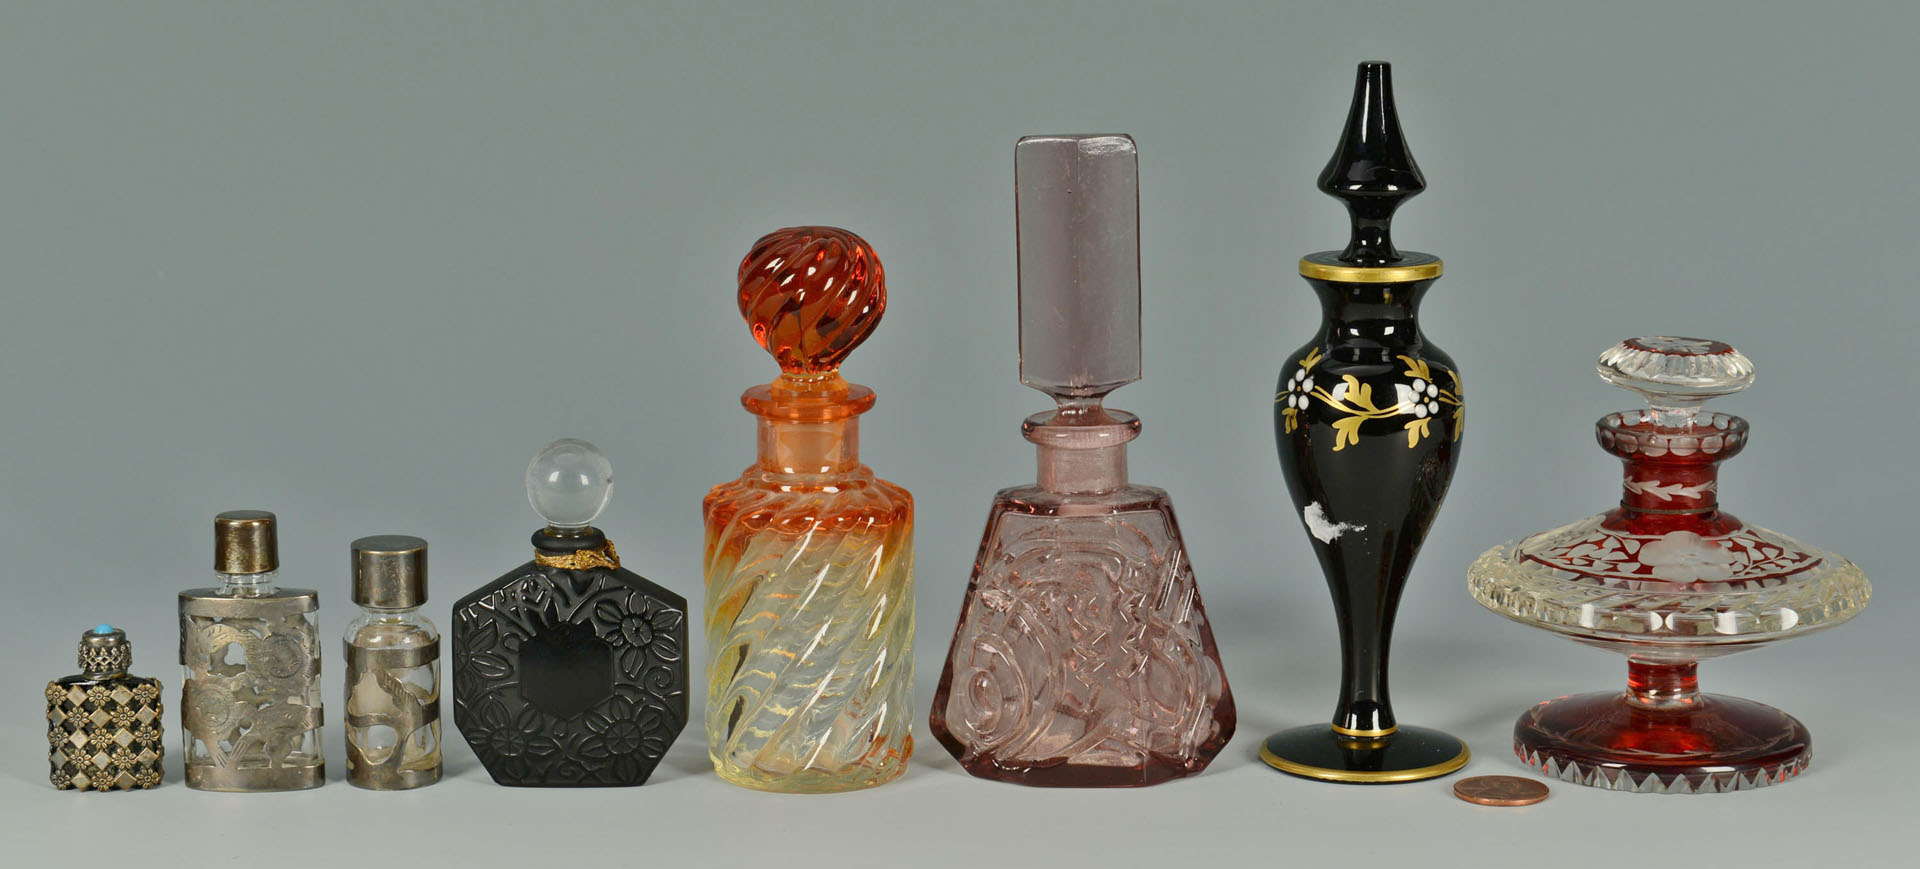 8 Vintage Decorative Perfume Bottles inc. colored